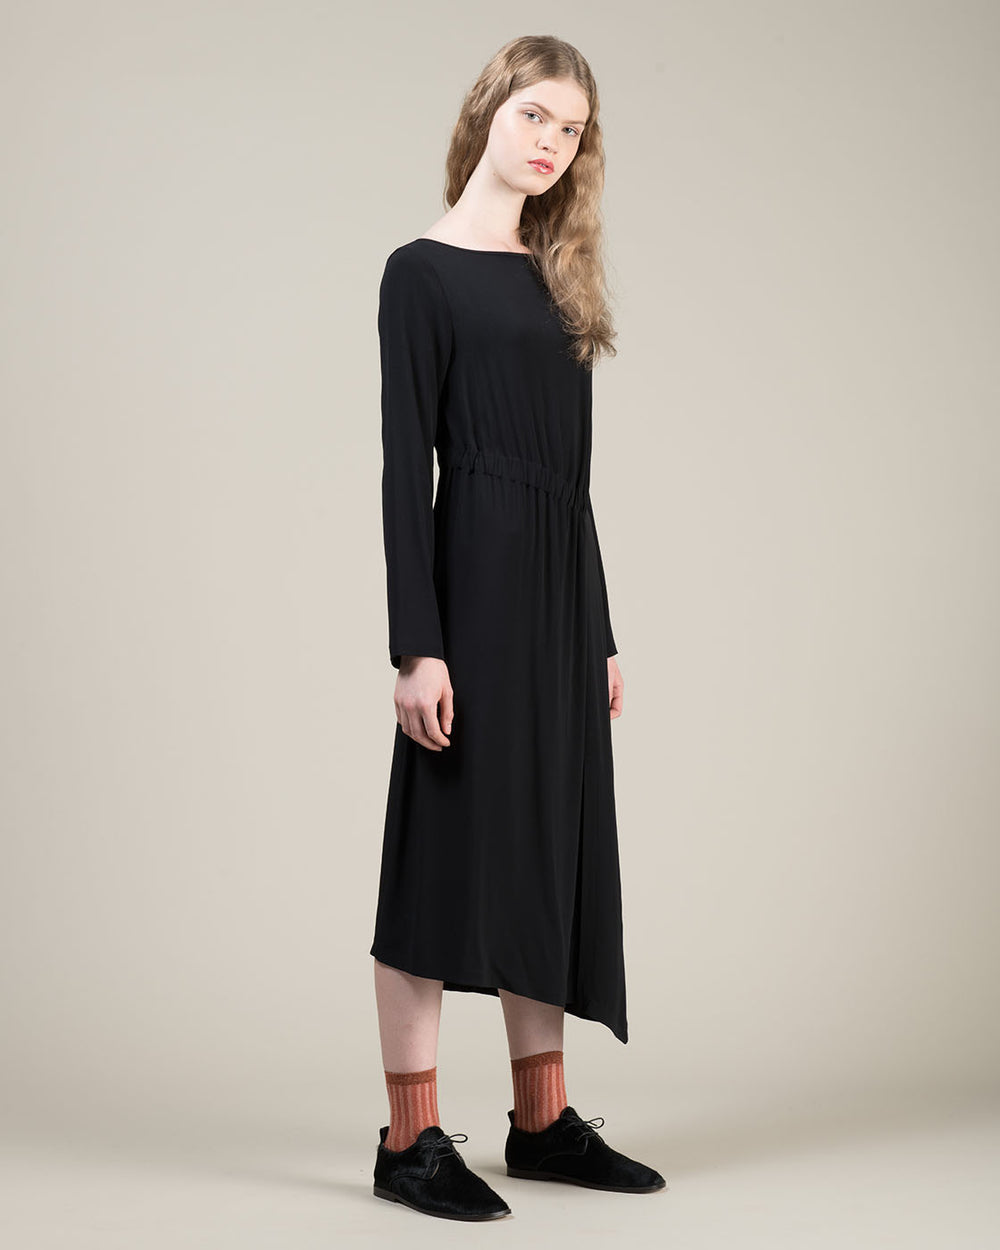 Long Black Draping Dress